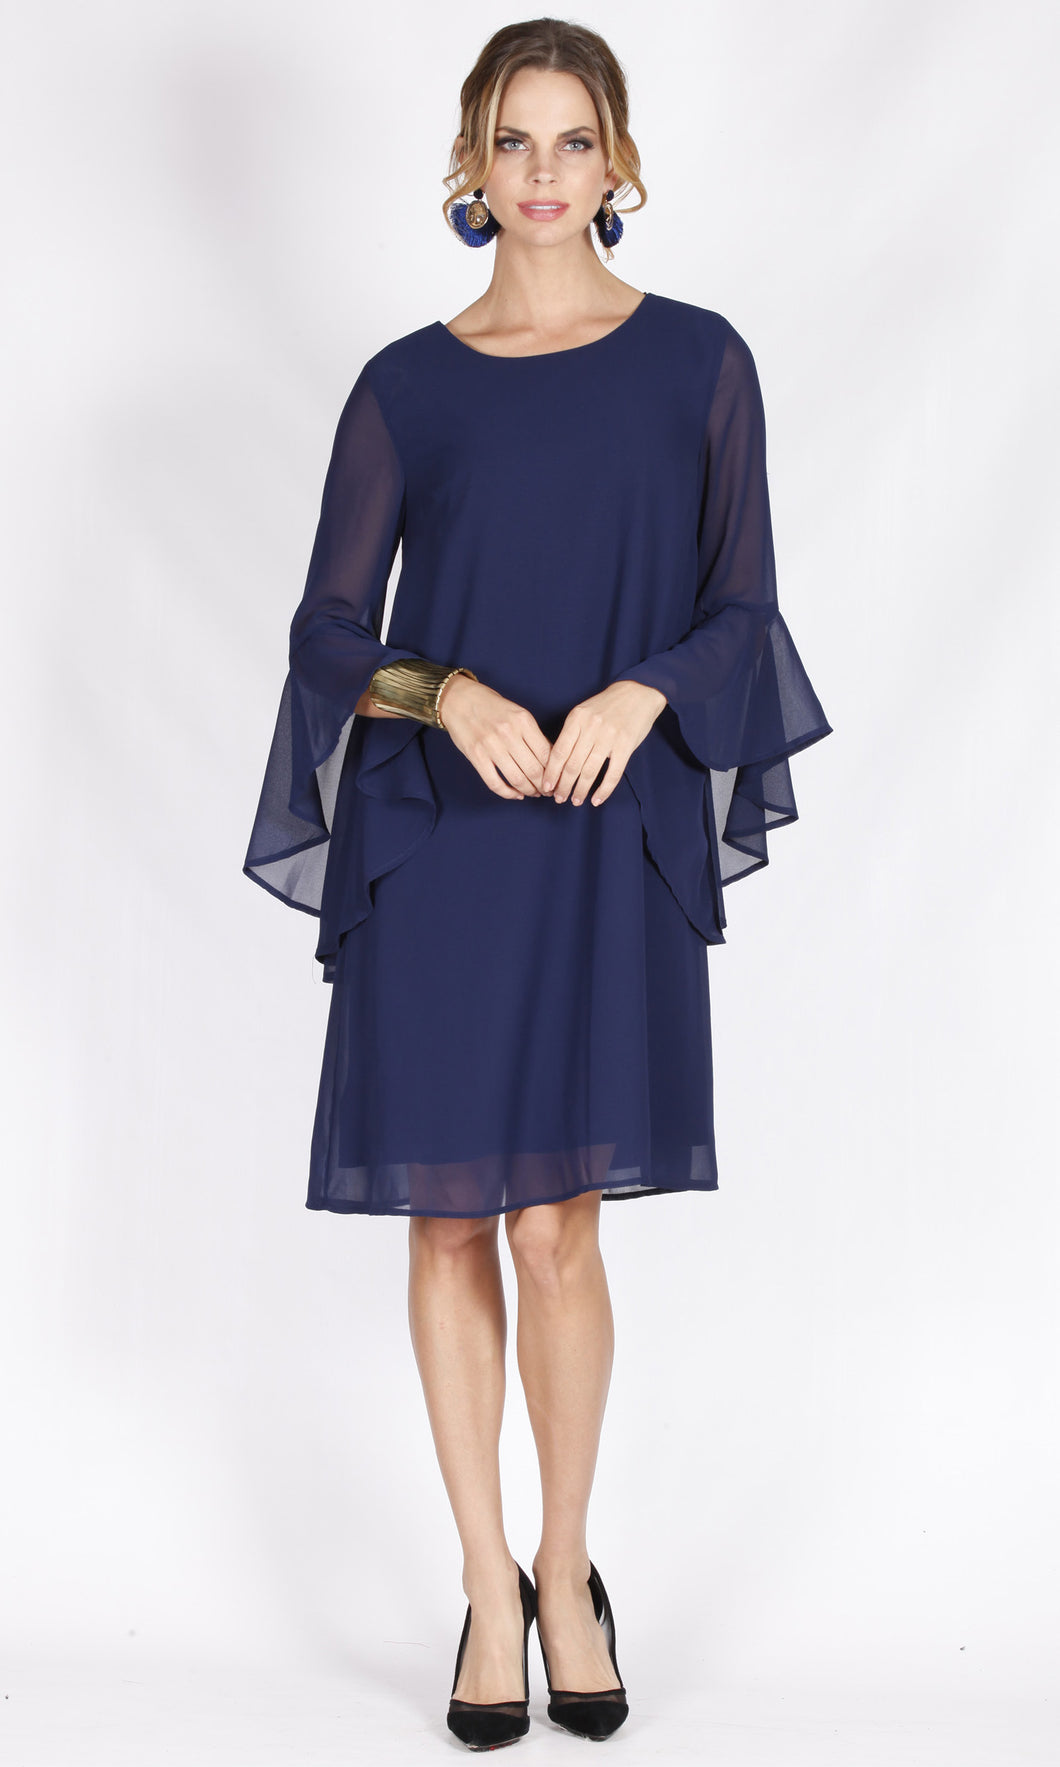 VS7361NC Blue Chiffon Ruffle Sleeve Dress (Pack)